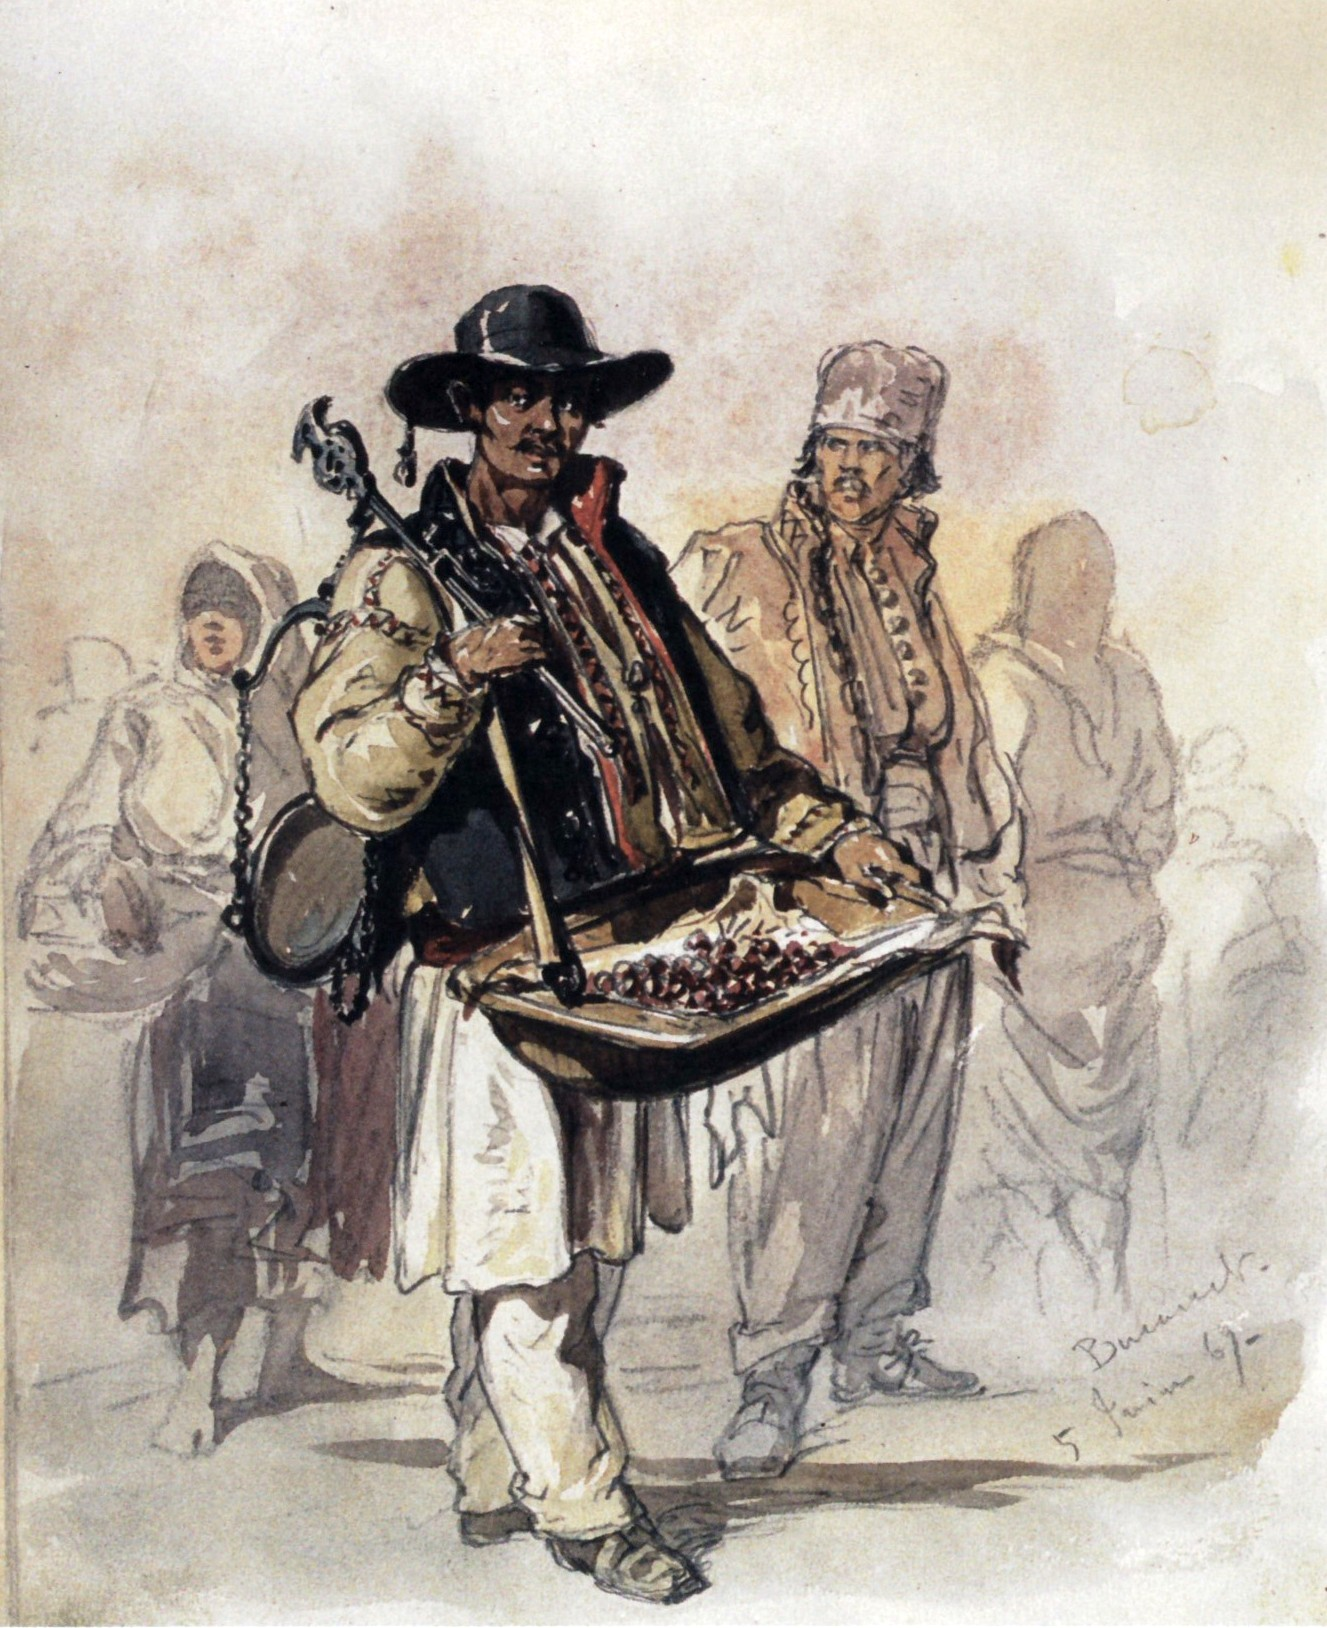 Cherry peddler in Bucharest, around 1869.